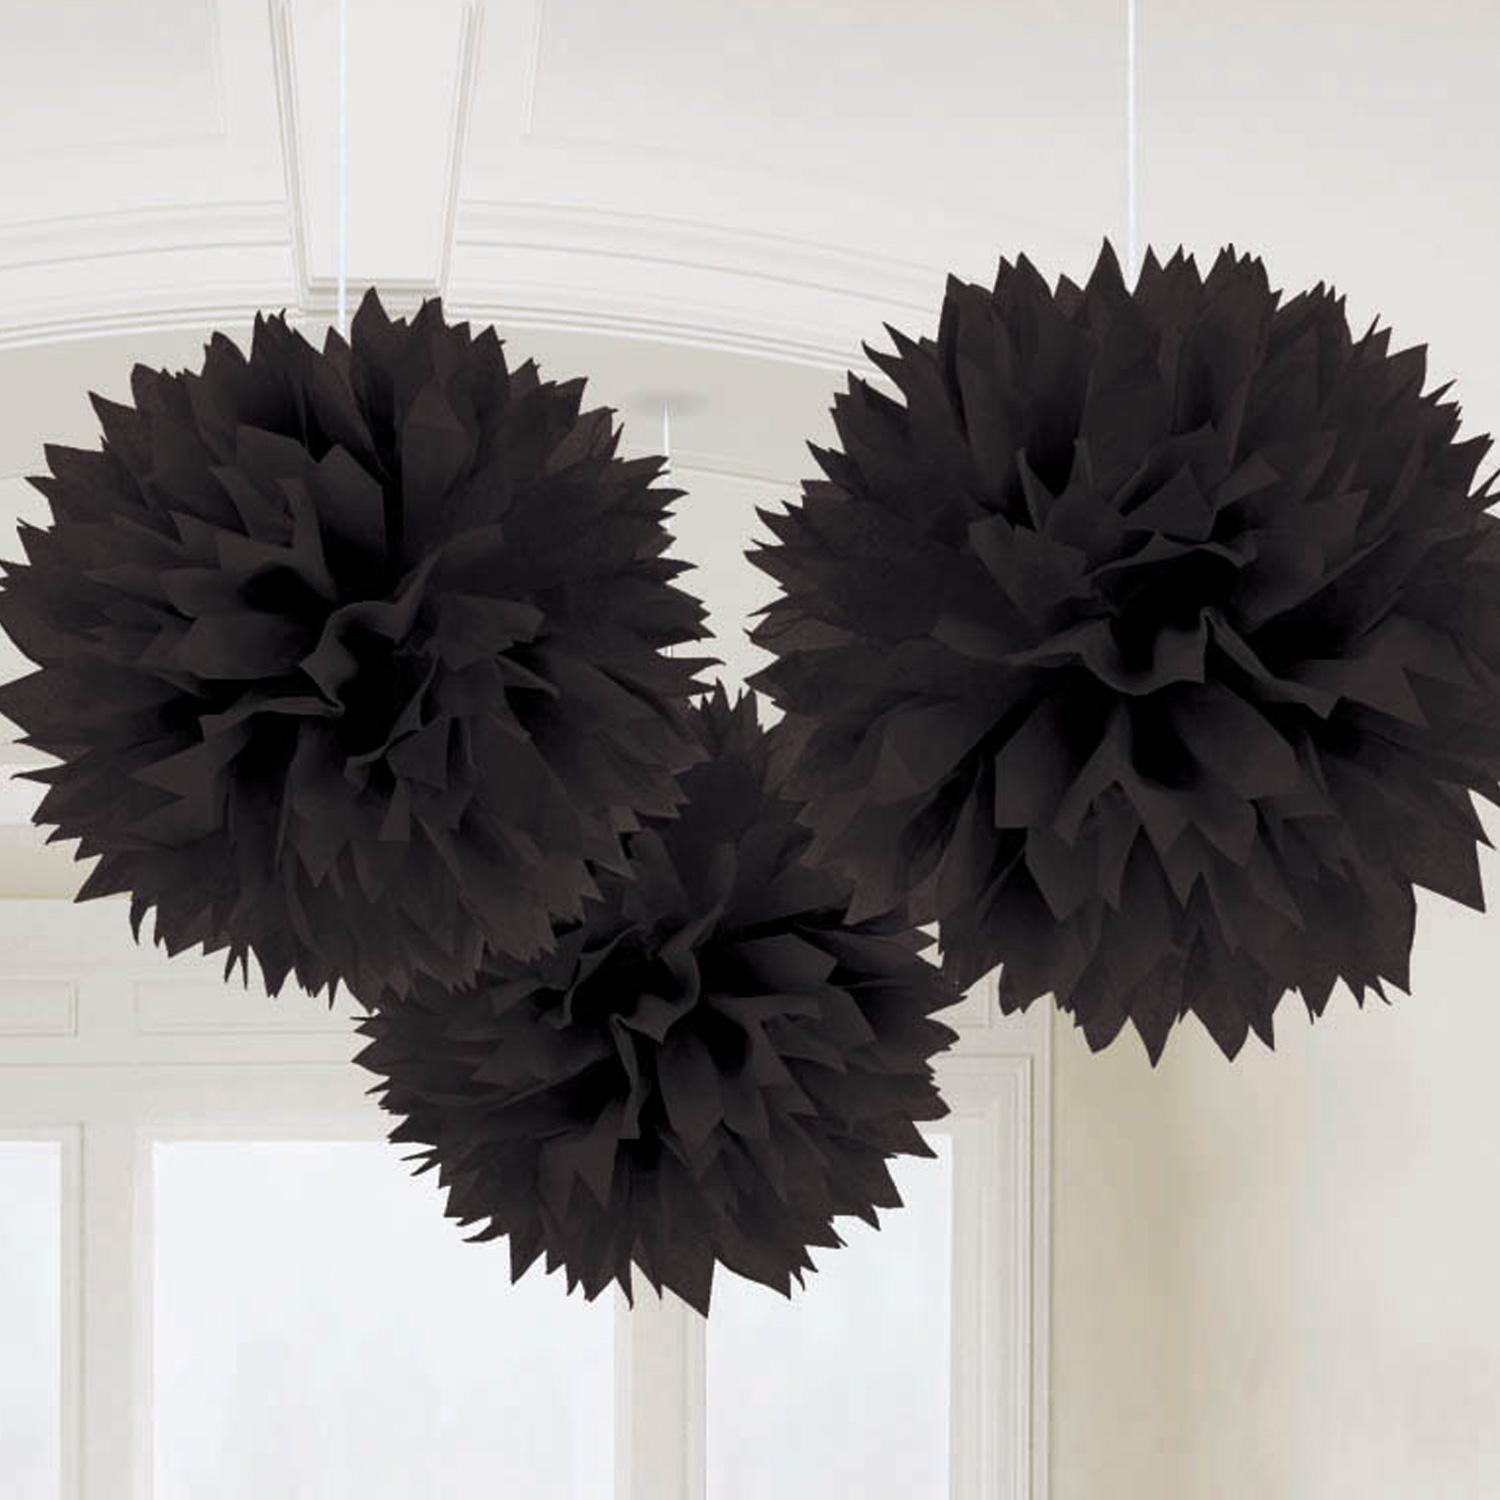 Fluffy Pom Poms Hanging Decoration Black